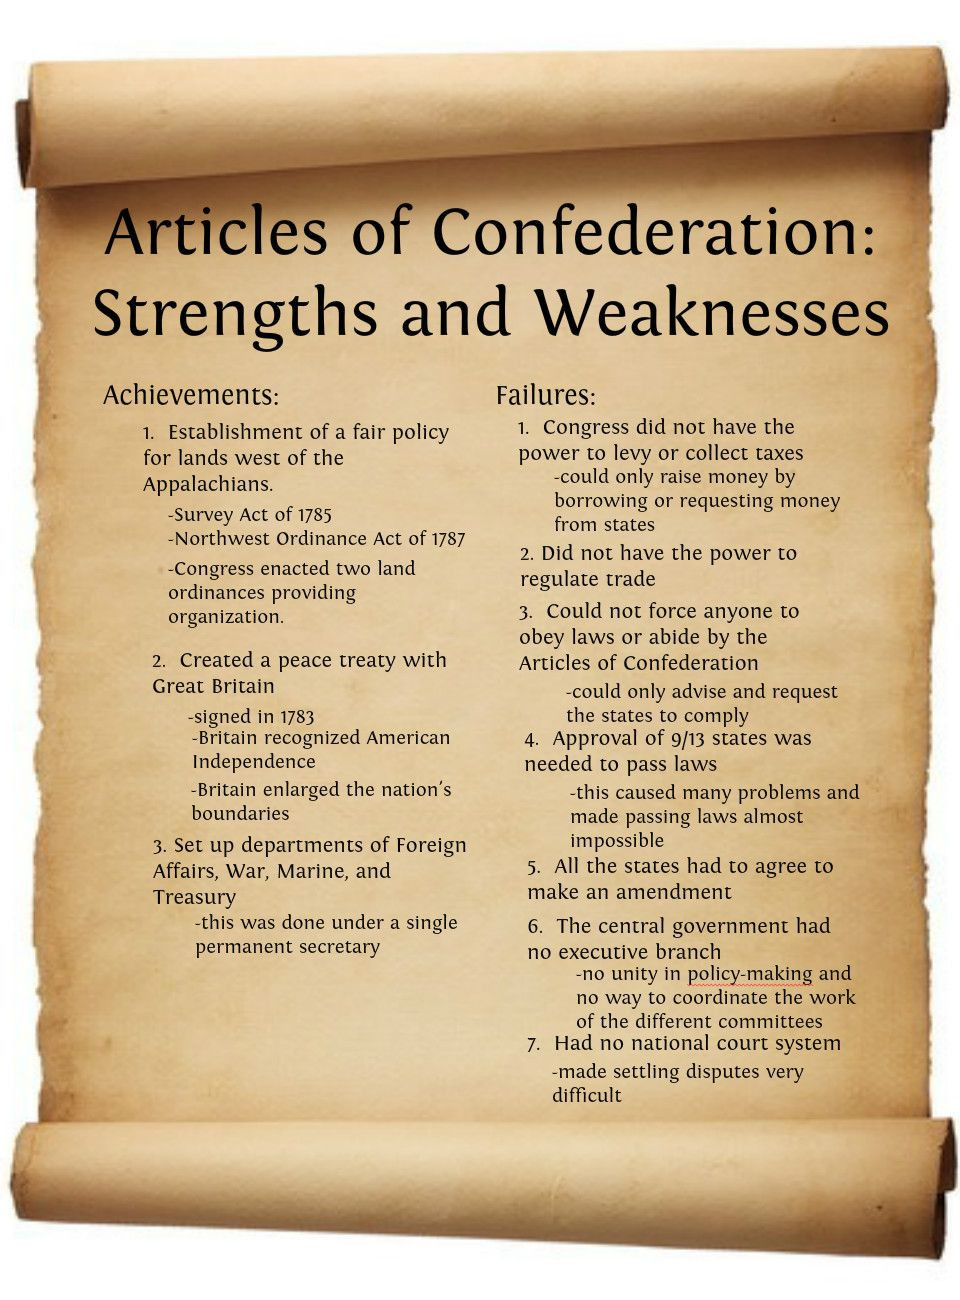 Articles Of Confederation Worksheet Articles Of Confederation Strengths and Weaknesses